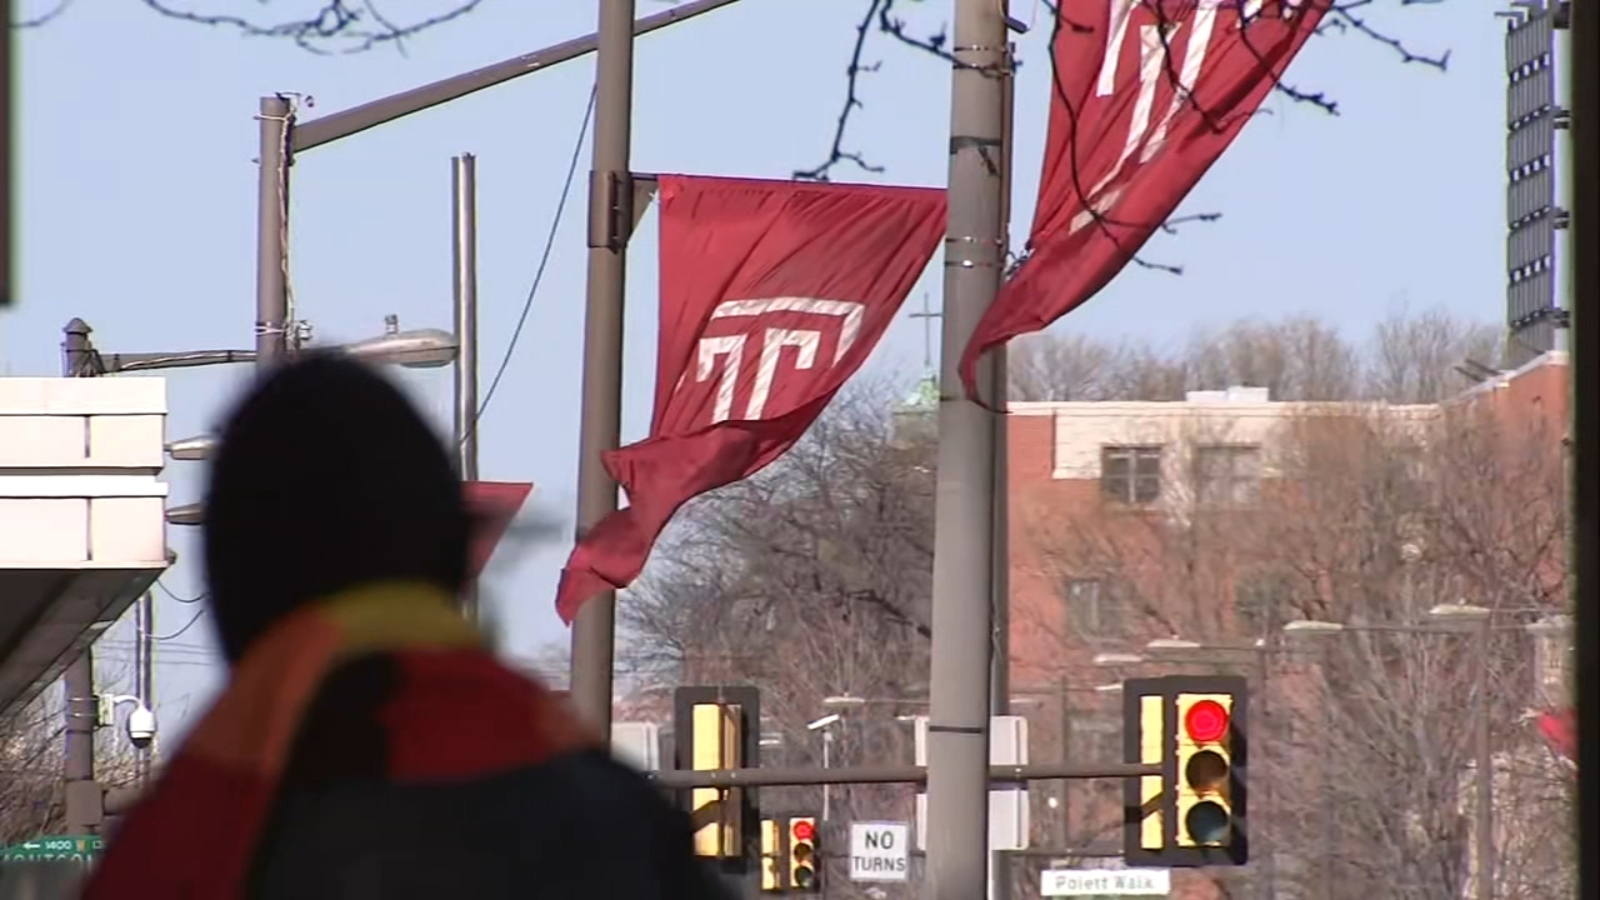 3 Temple University students have the mumps, school says